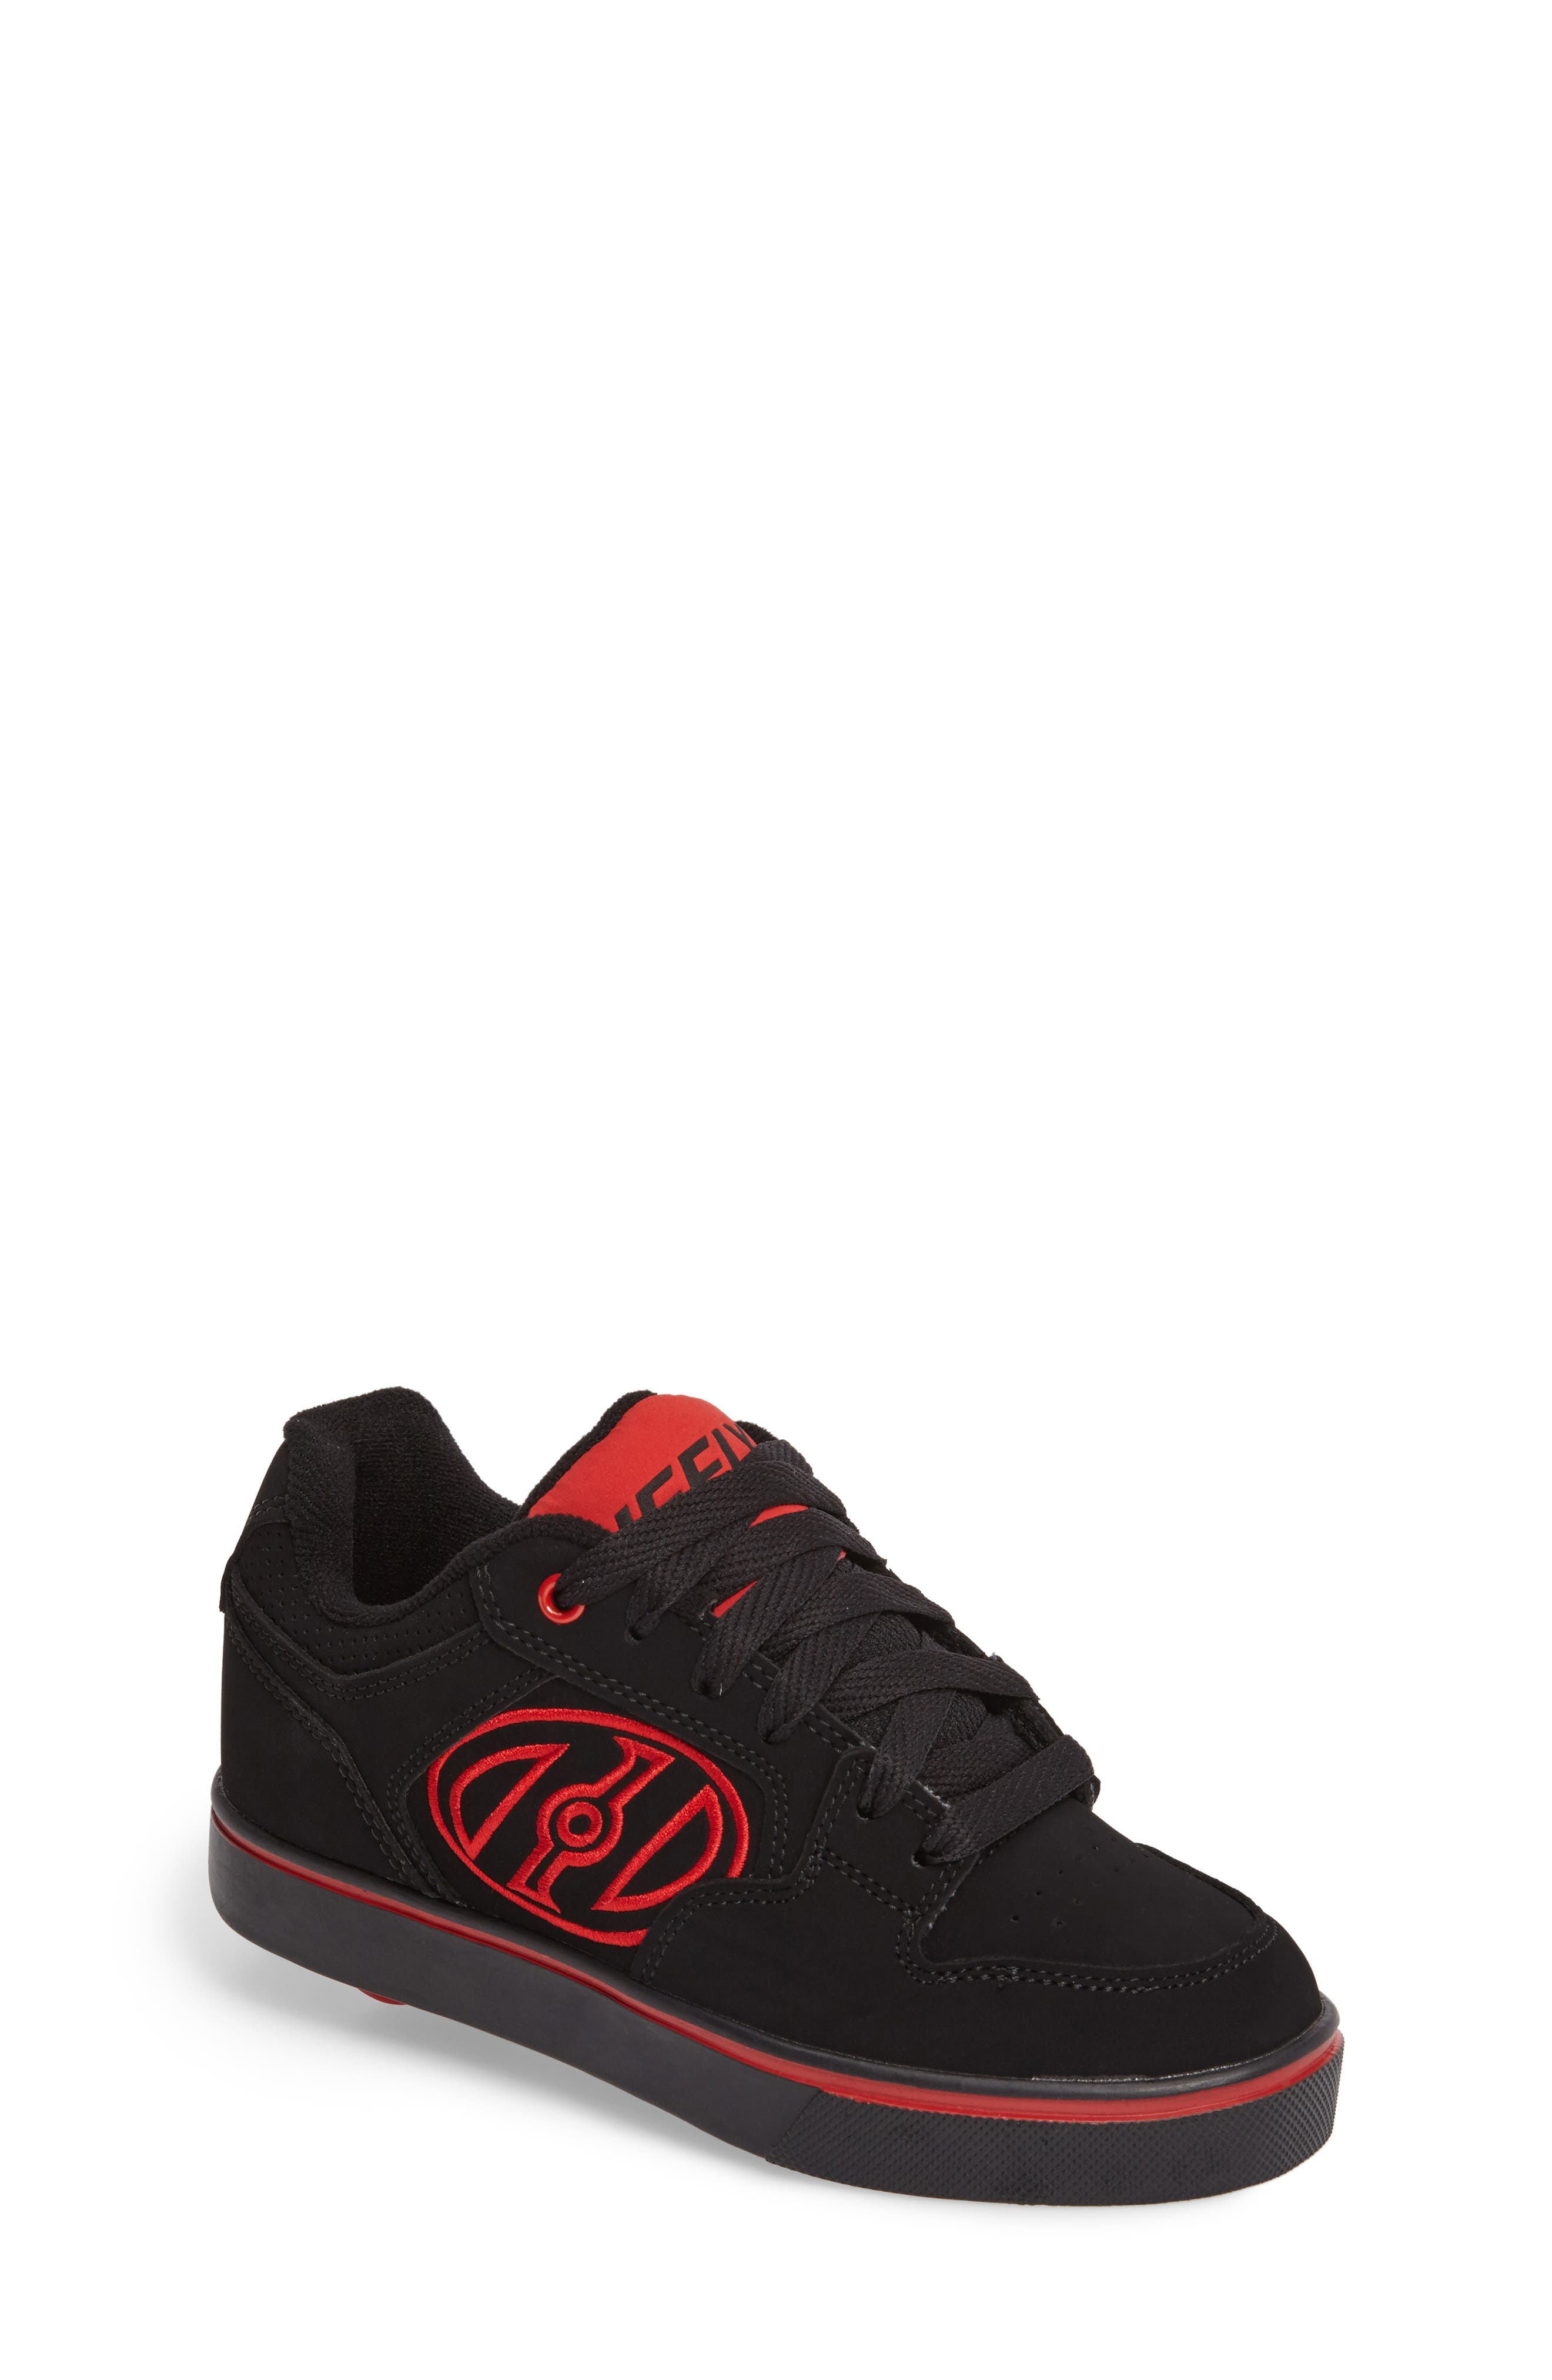 Alternate Image 1 Selected - Heelys Motion Plus Sneaker (Little Kid & Big Kid)